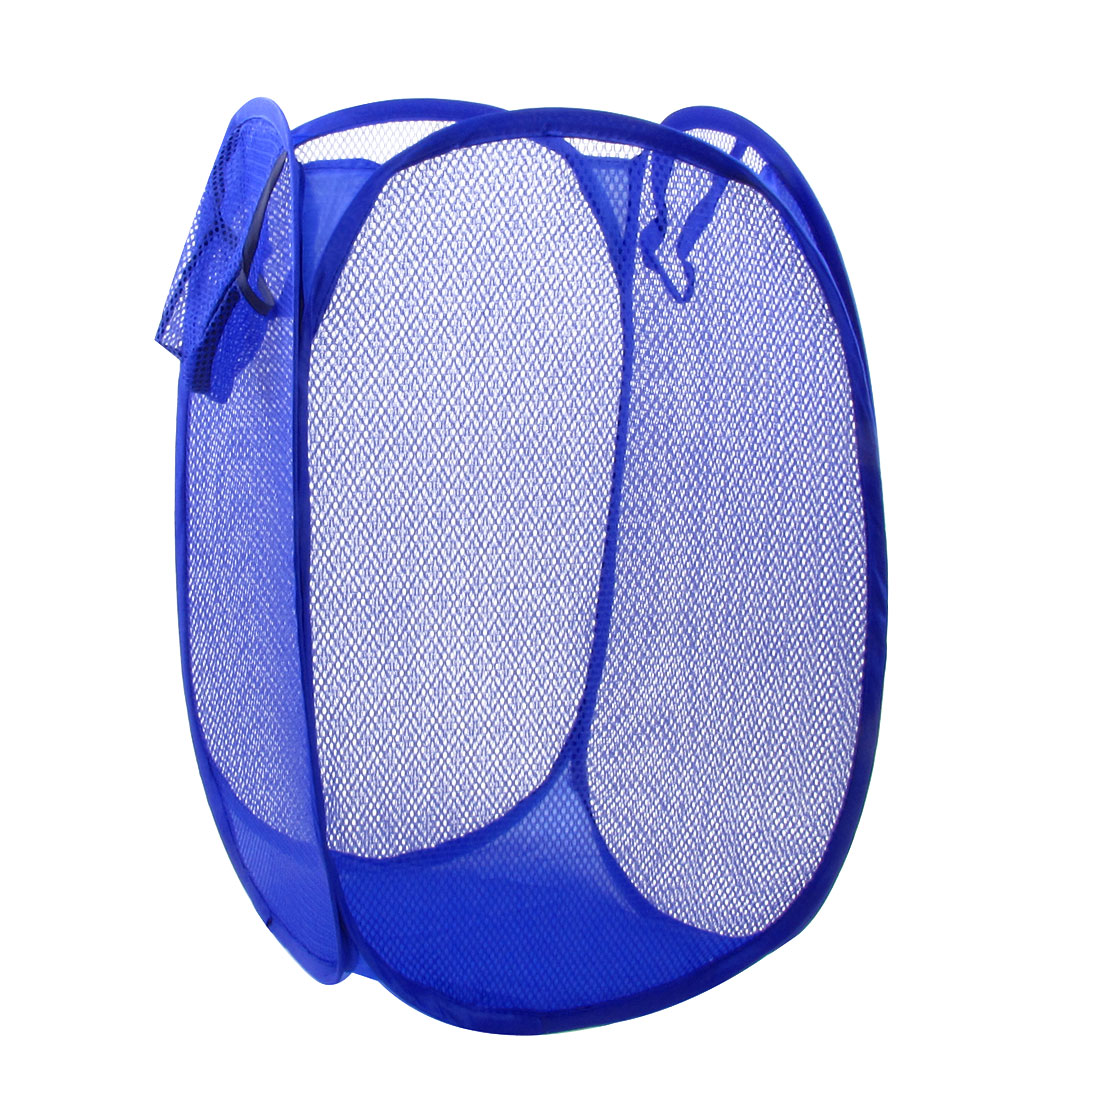 Home Foldable Blue Meshy Design Clothes Storage Laundry Basket Hamper